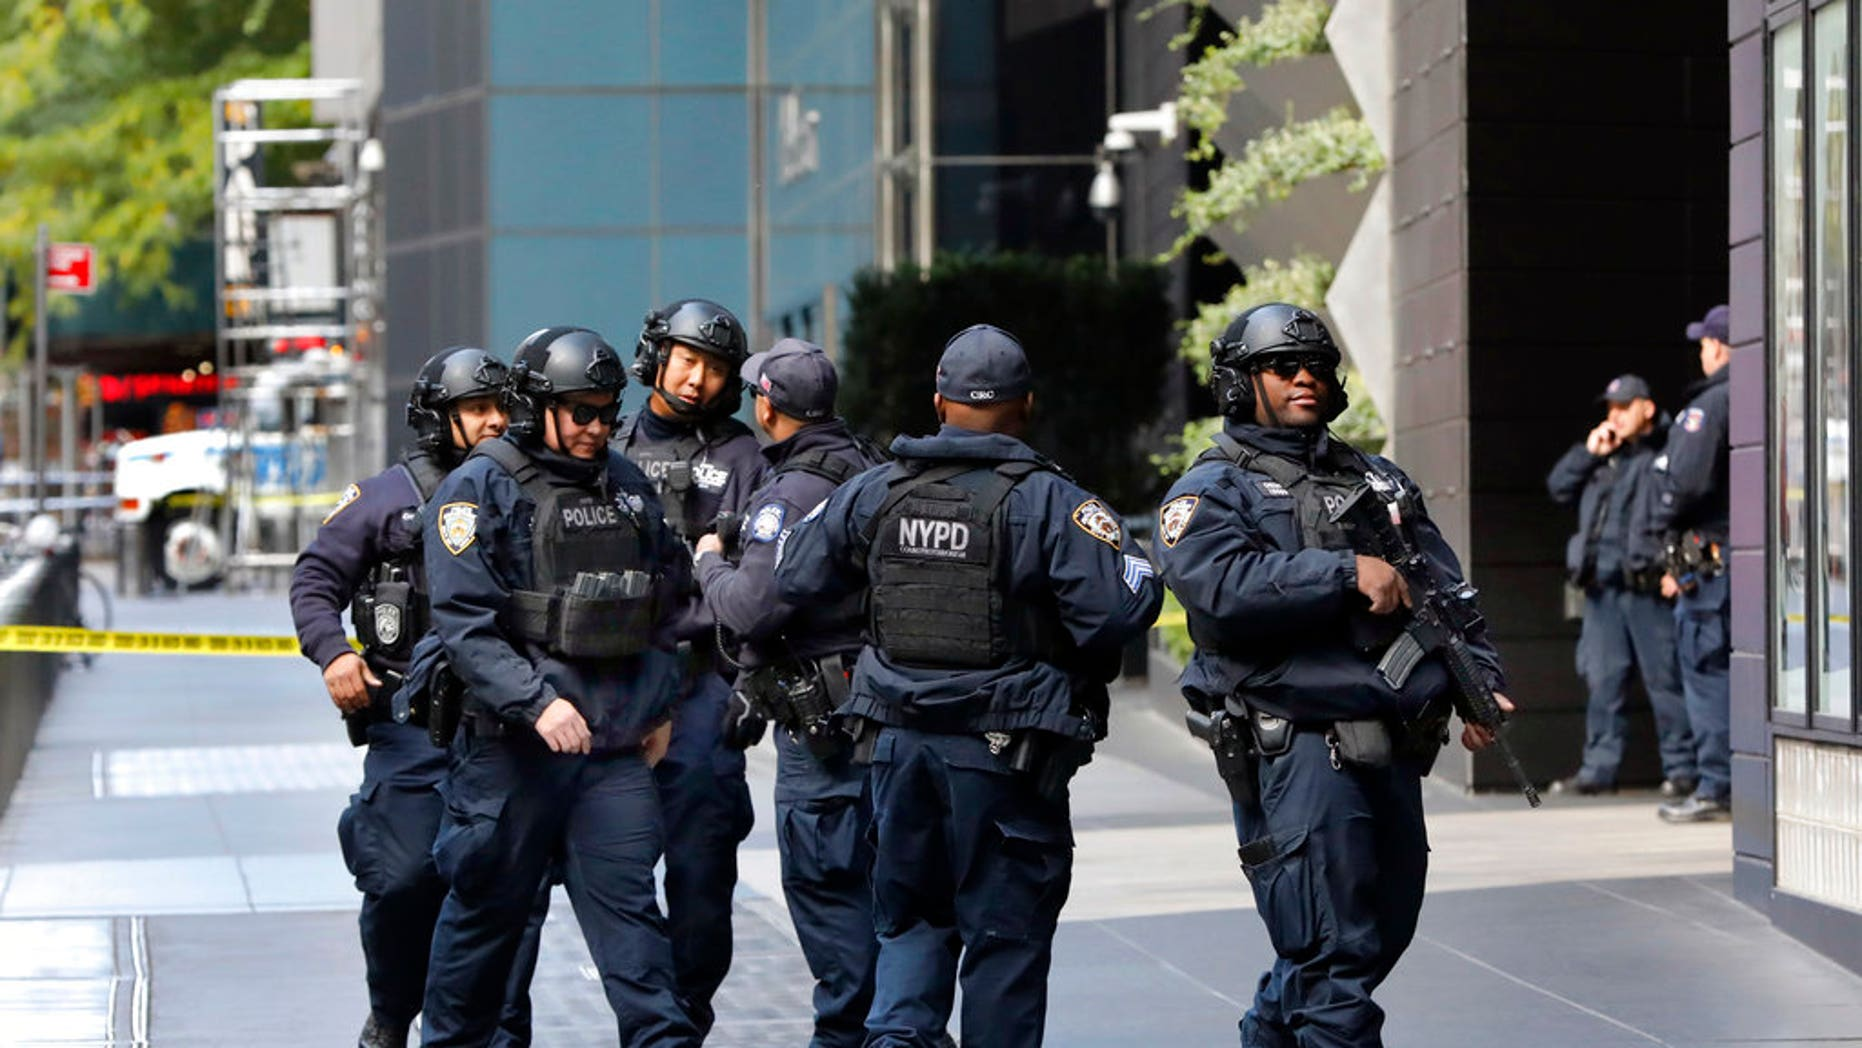 New York City Police Dept. officers gather outside the Time Warner Center, in New York, Wednesday, Oct. 24, 2018. A police bomb squad was sent to CNN's offices in New York City and the newsroom was evacuated because of a suspicious package. (AP Photo/Richard Drew)